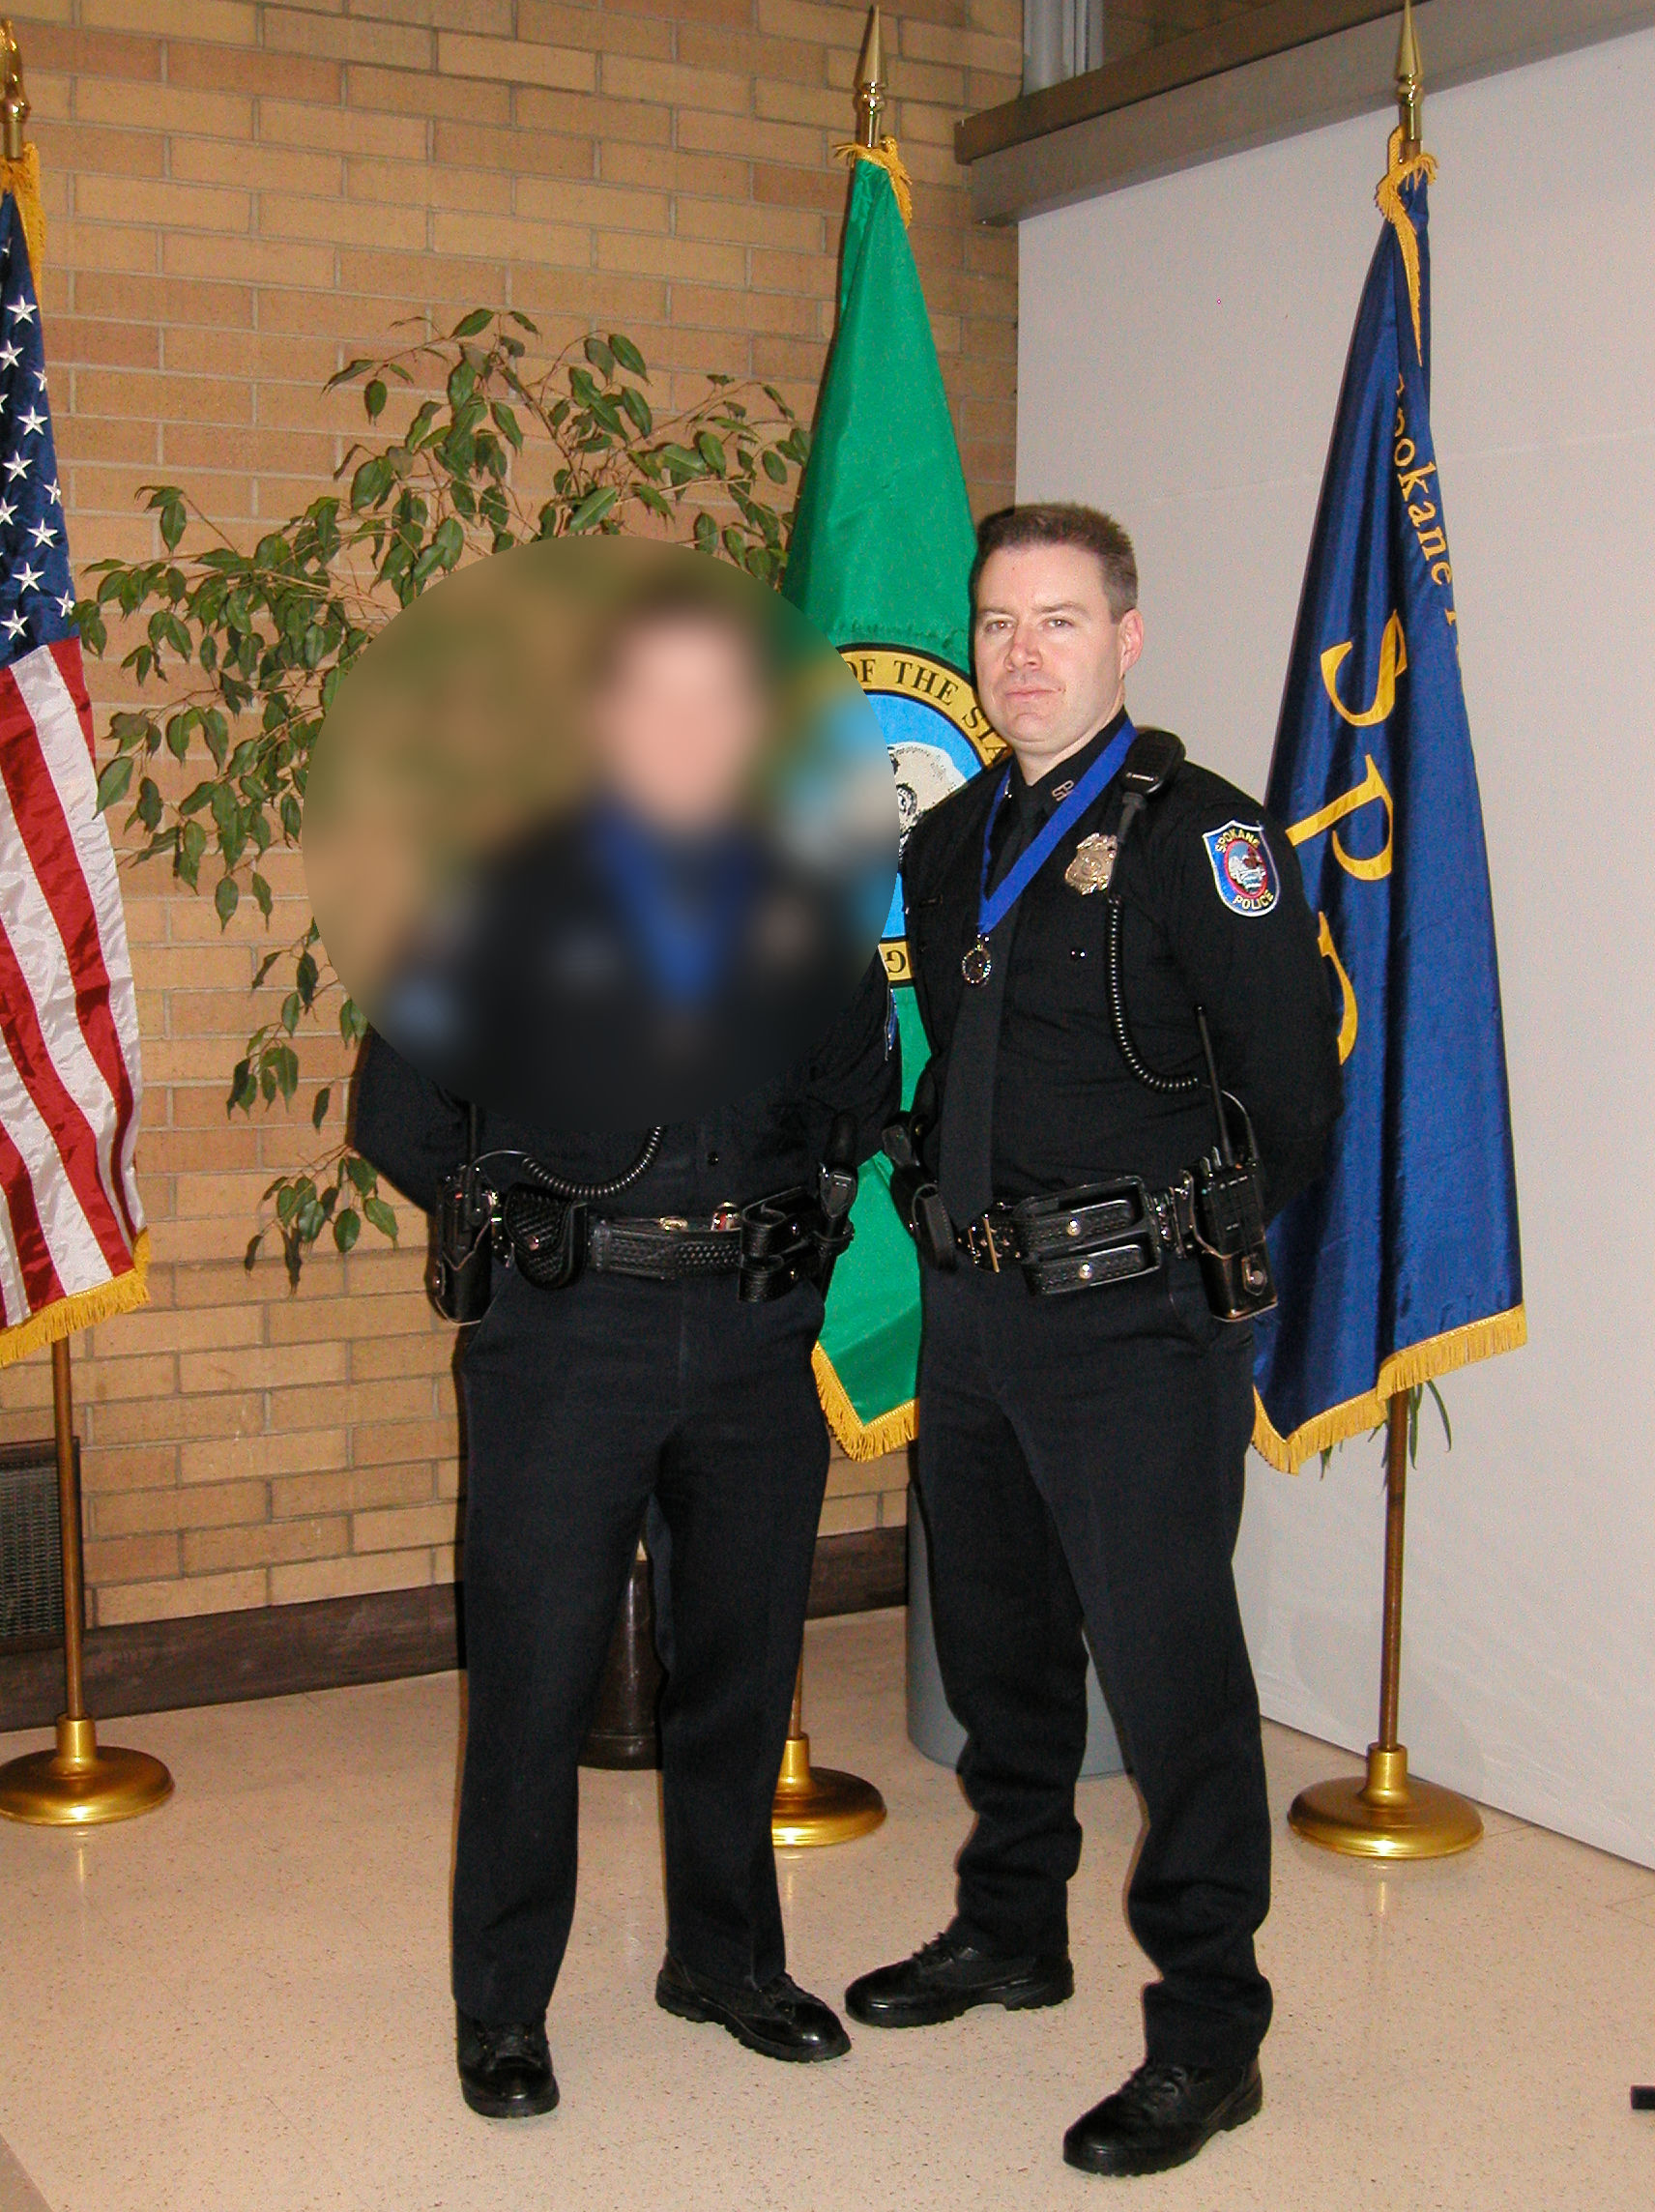 I wish I had a smiling picture of me in uniform, but this is all I've got from that time. Not sure why the guy is blurry next to me. There must have been a spot on the camera lens.